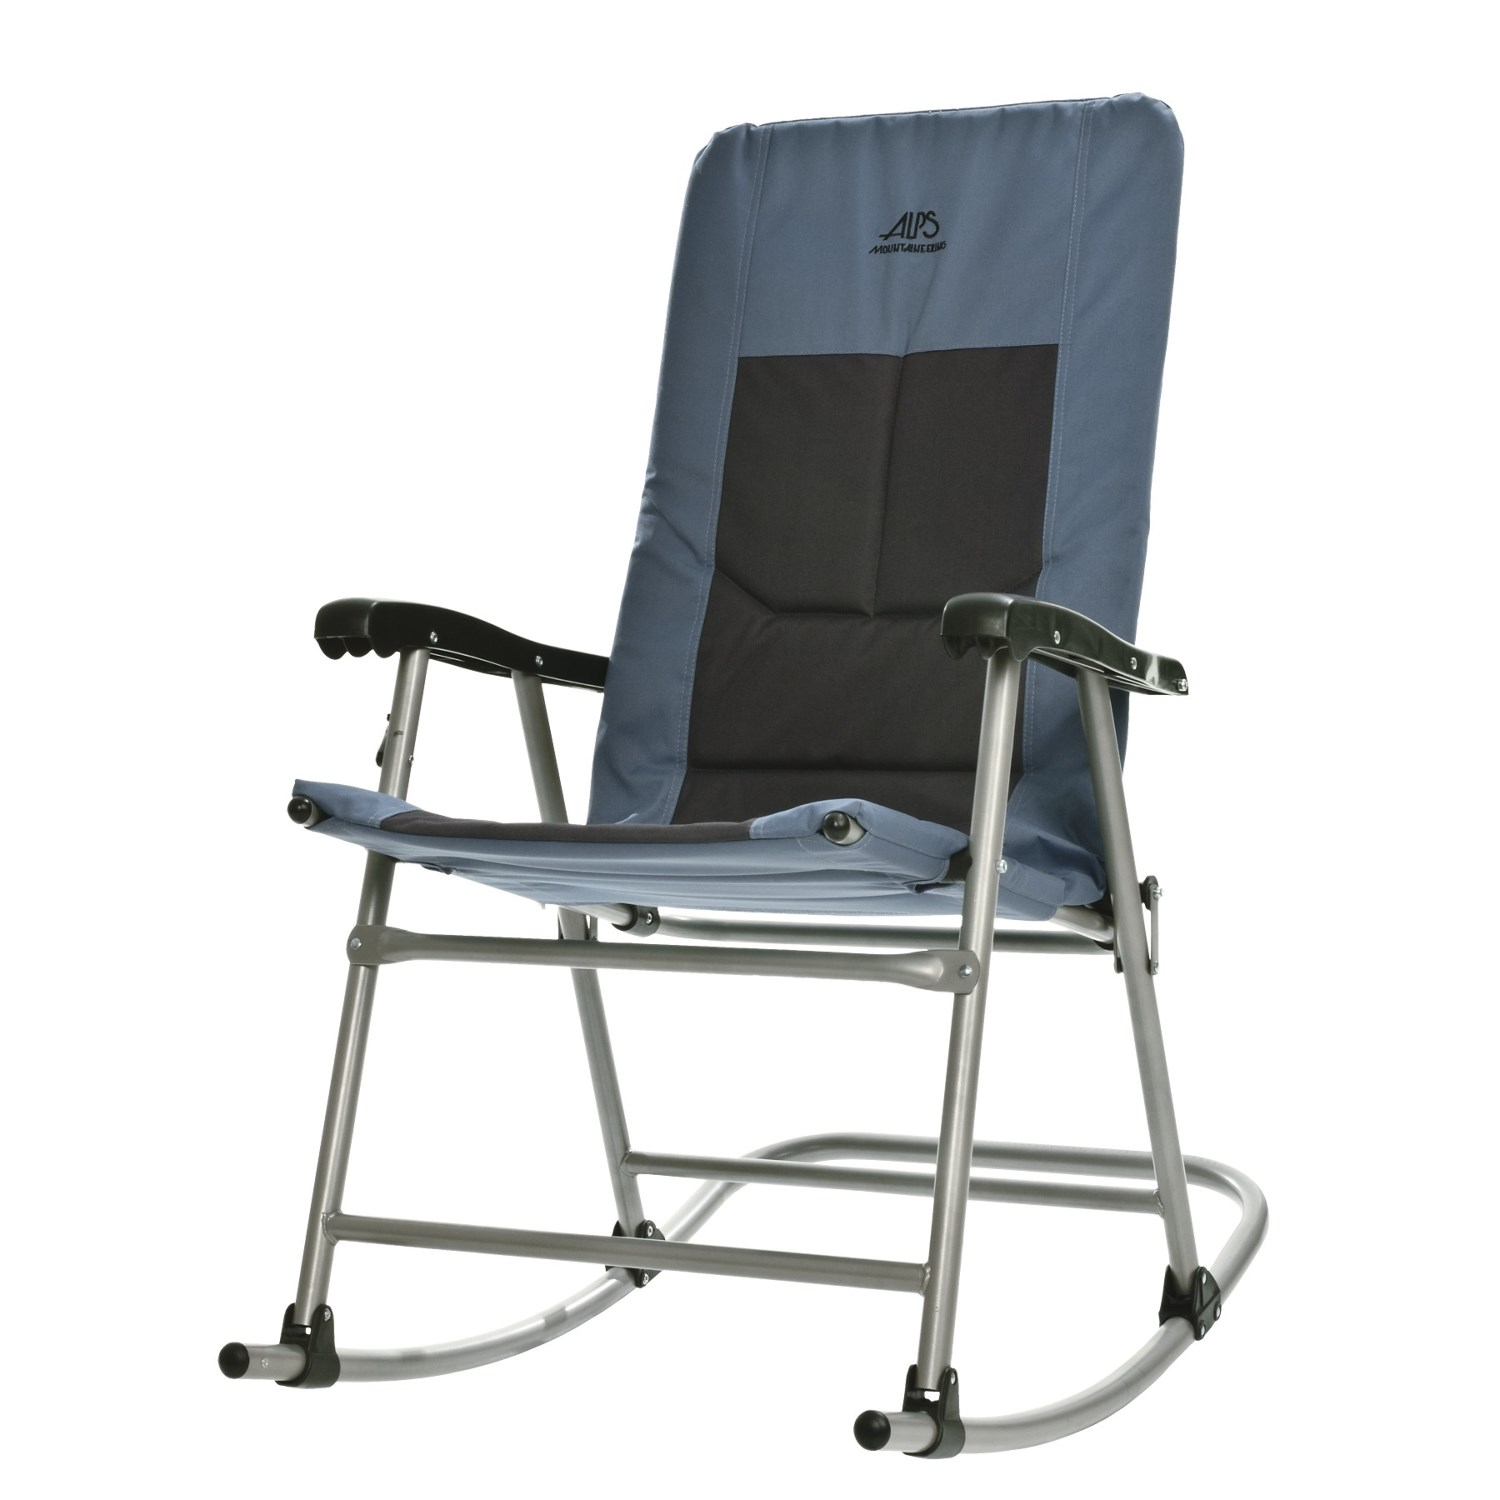 Camp Rocking Chair Alps Mountaineering Rocking Chair Save 29